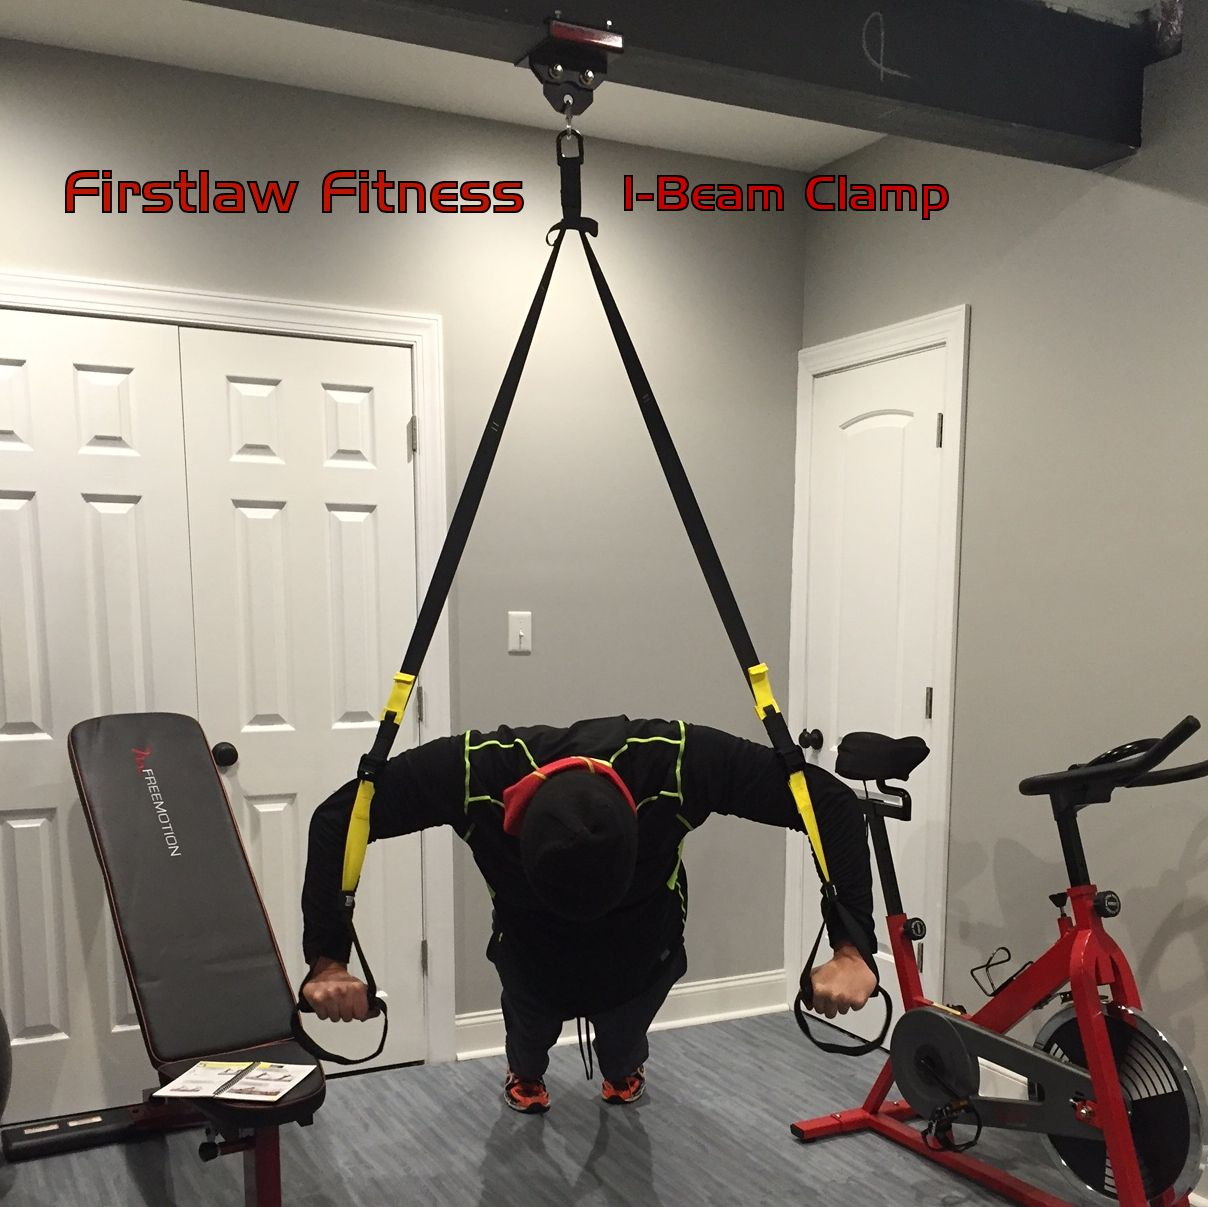 The firstlaw fitness i beam clamp is strongest one you